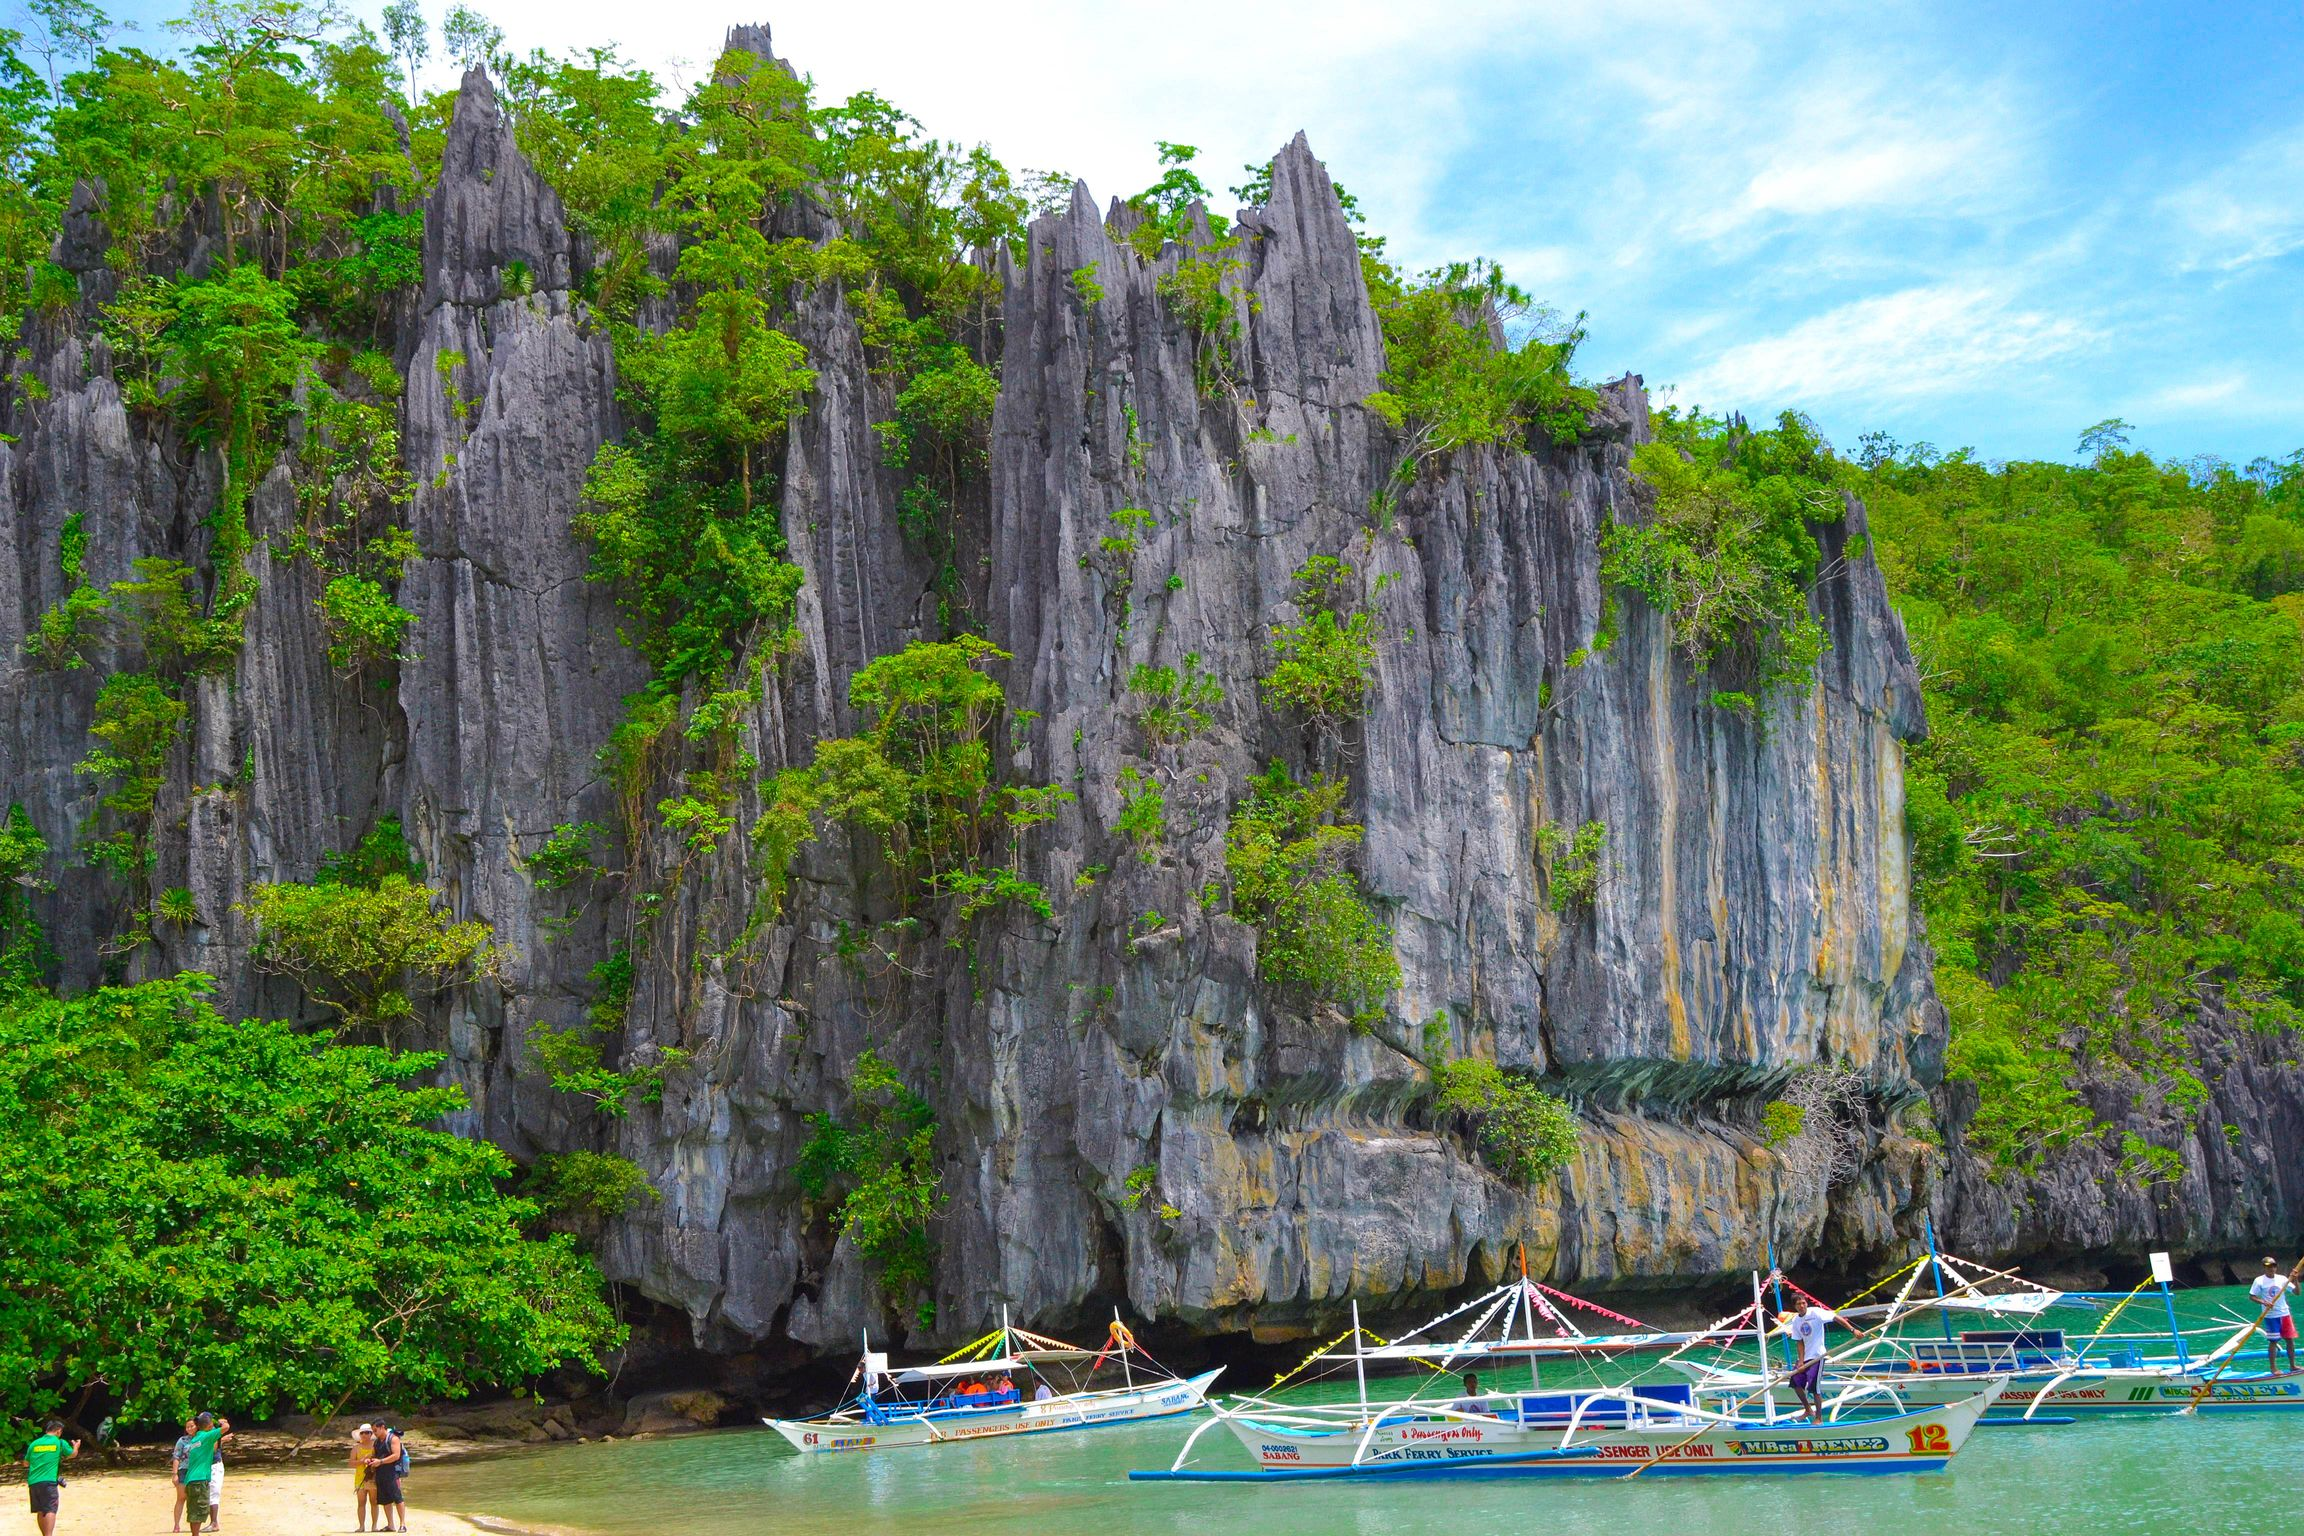 Outrigger boats moored beneath a towering limestone cliff overhung with vegetation